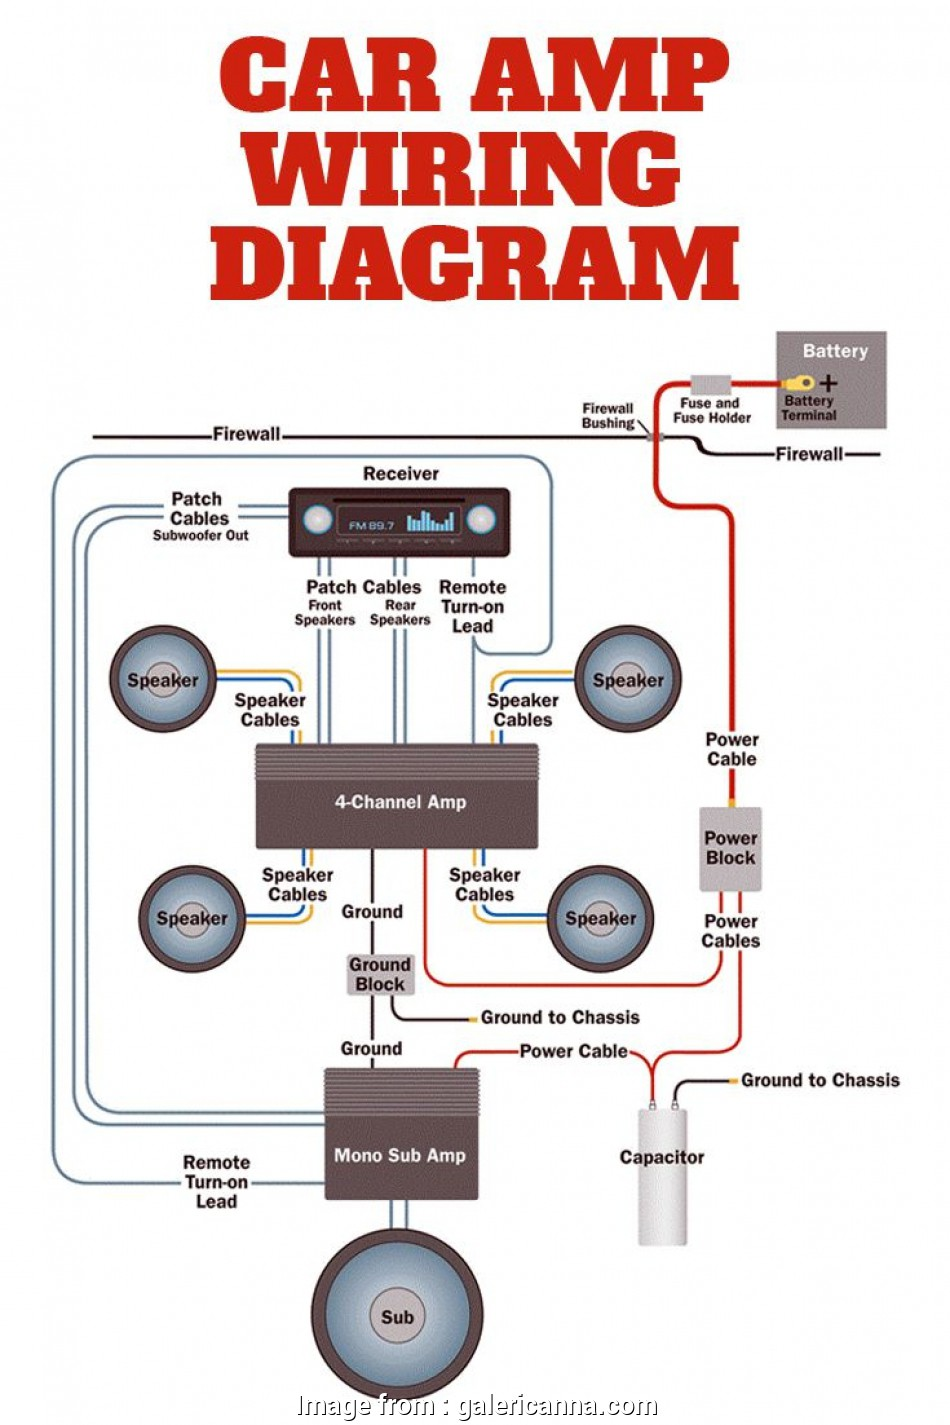 Crutchfield 4 Channel Wiring Diagram Perfect Wire Amp This Simplified Shows